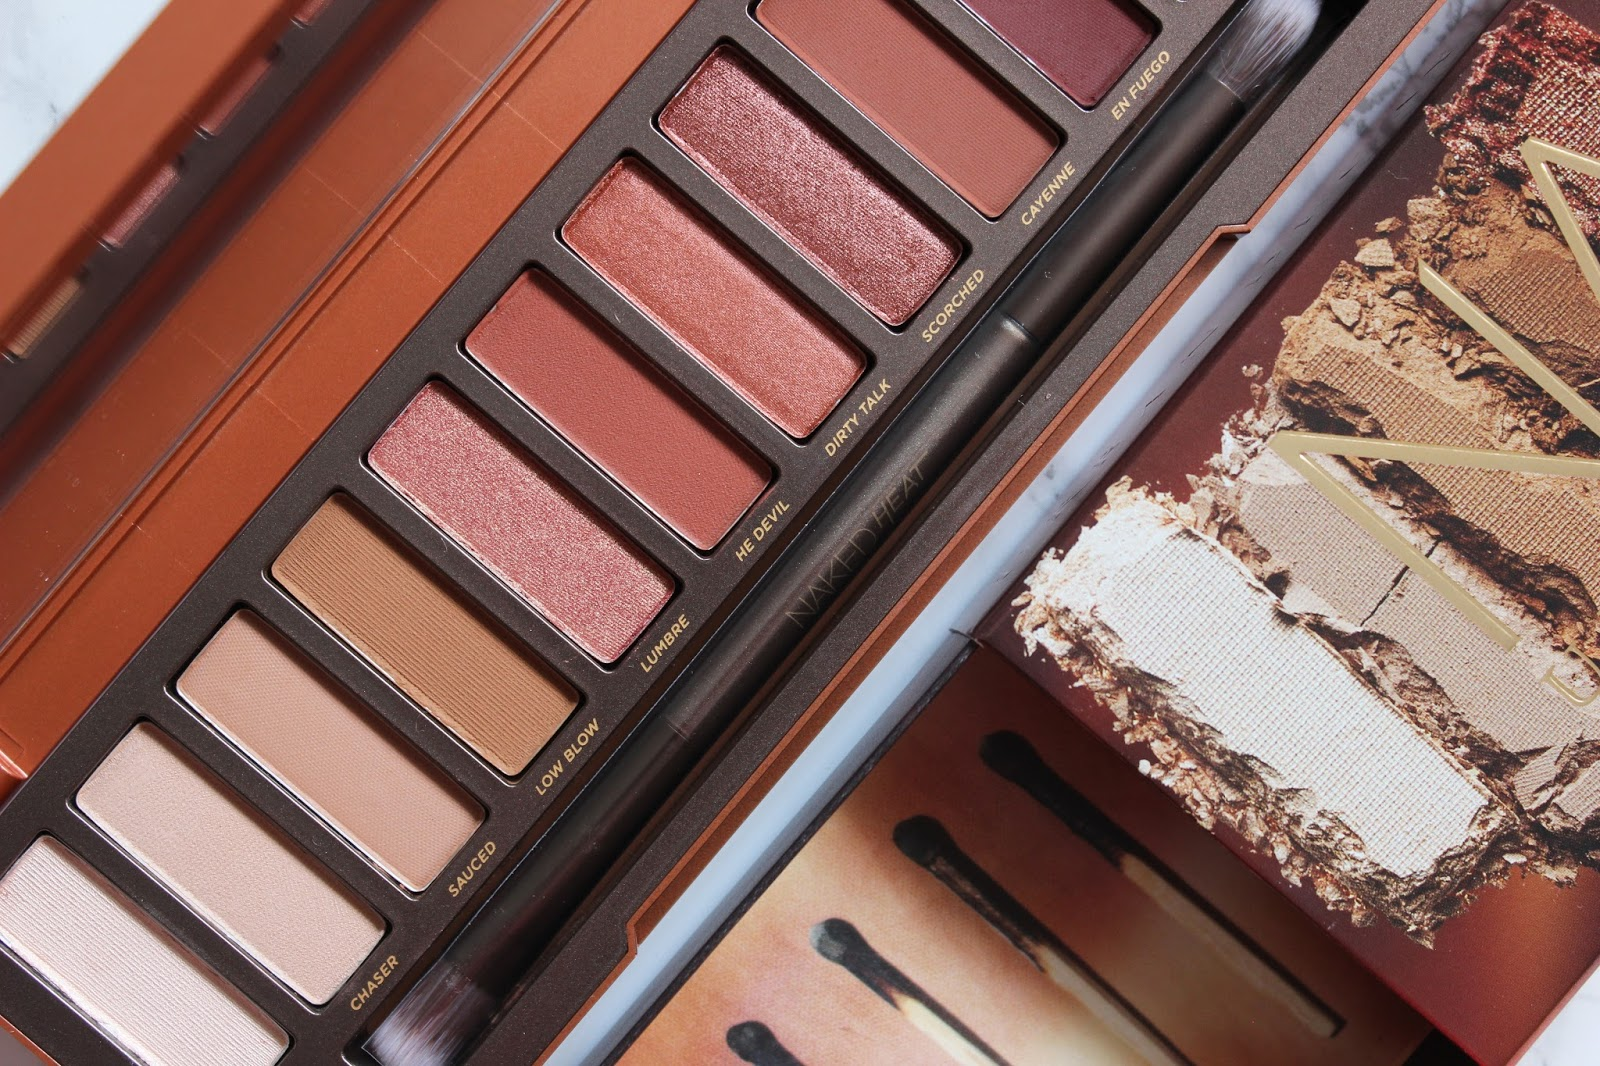 Urban Decay Naked Heat Eyeshadow Palette | Review & Swatches